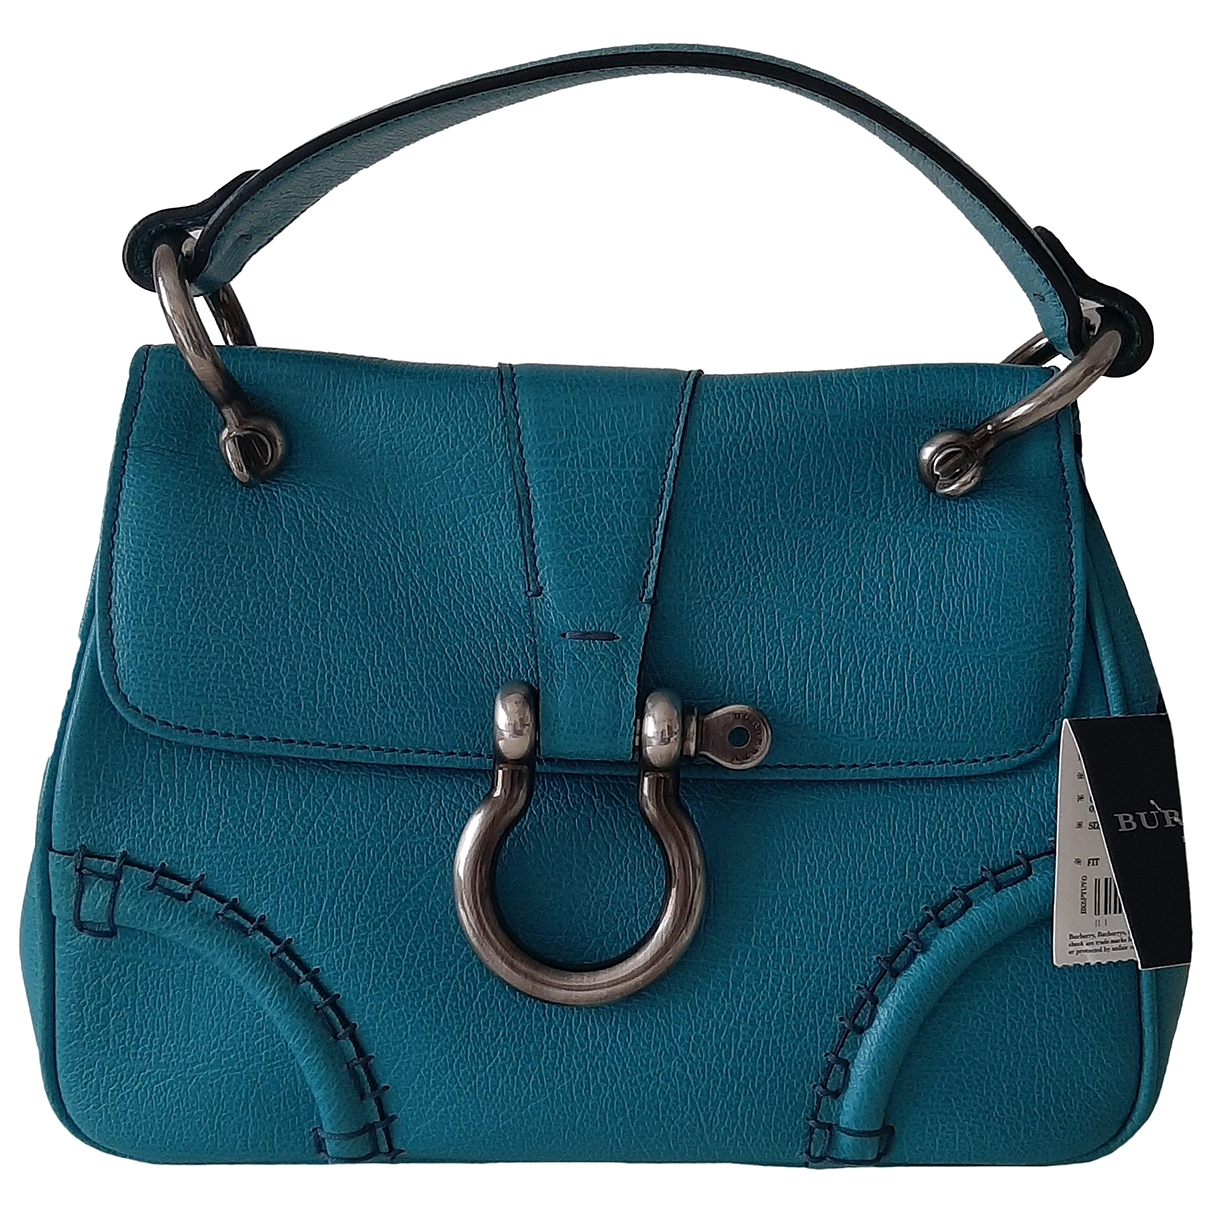 Burberry \N Turquoise Leather handbag for Women \N